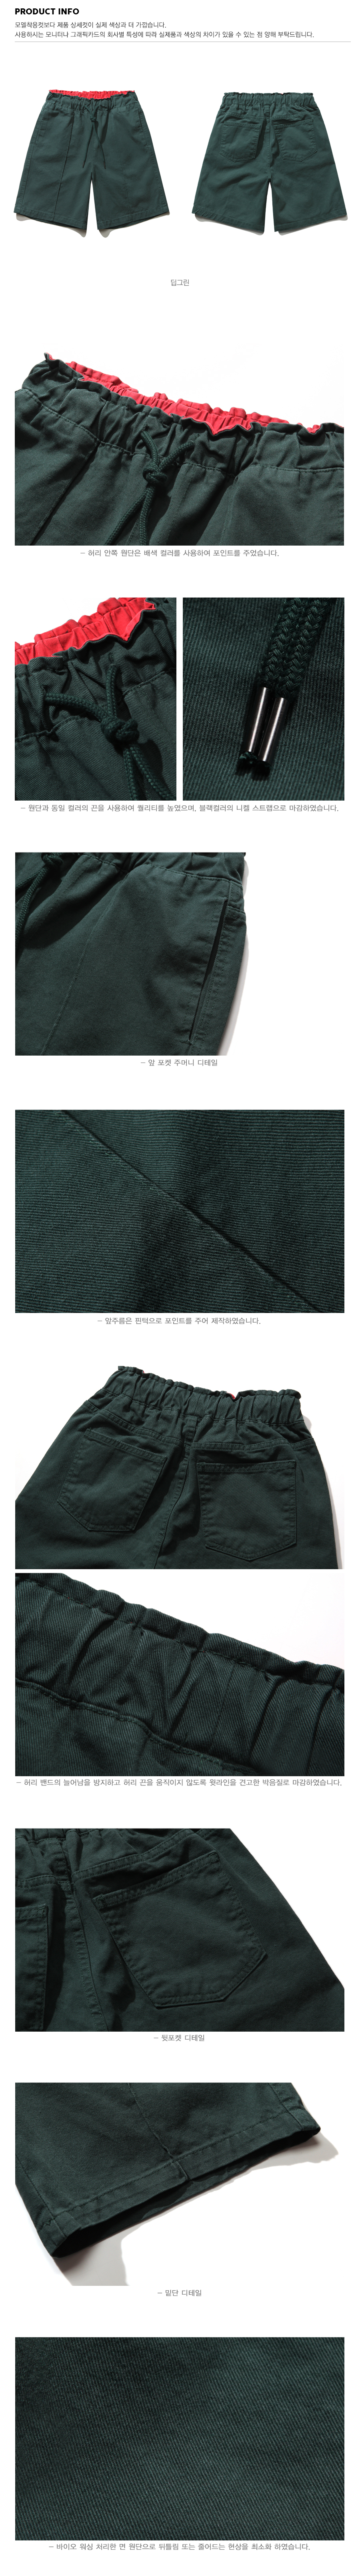 20180518_bio_washing_short_pants_detail_deepgreen_kj.jpg